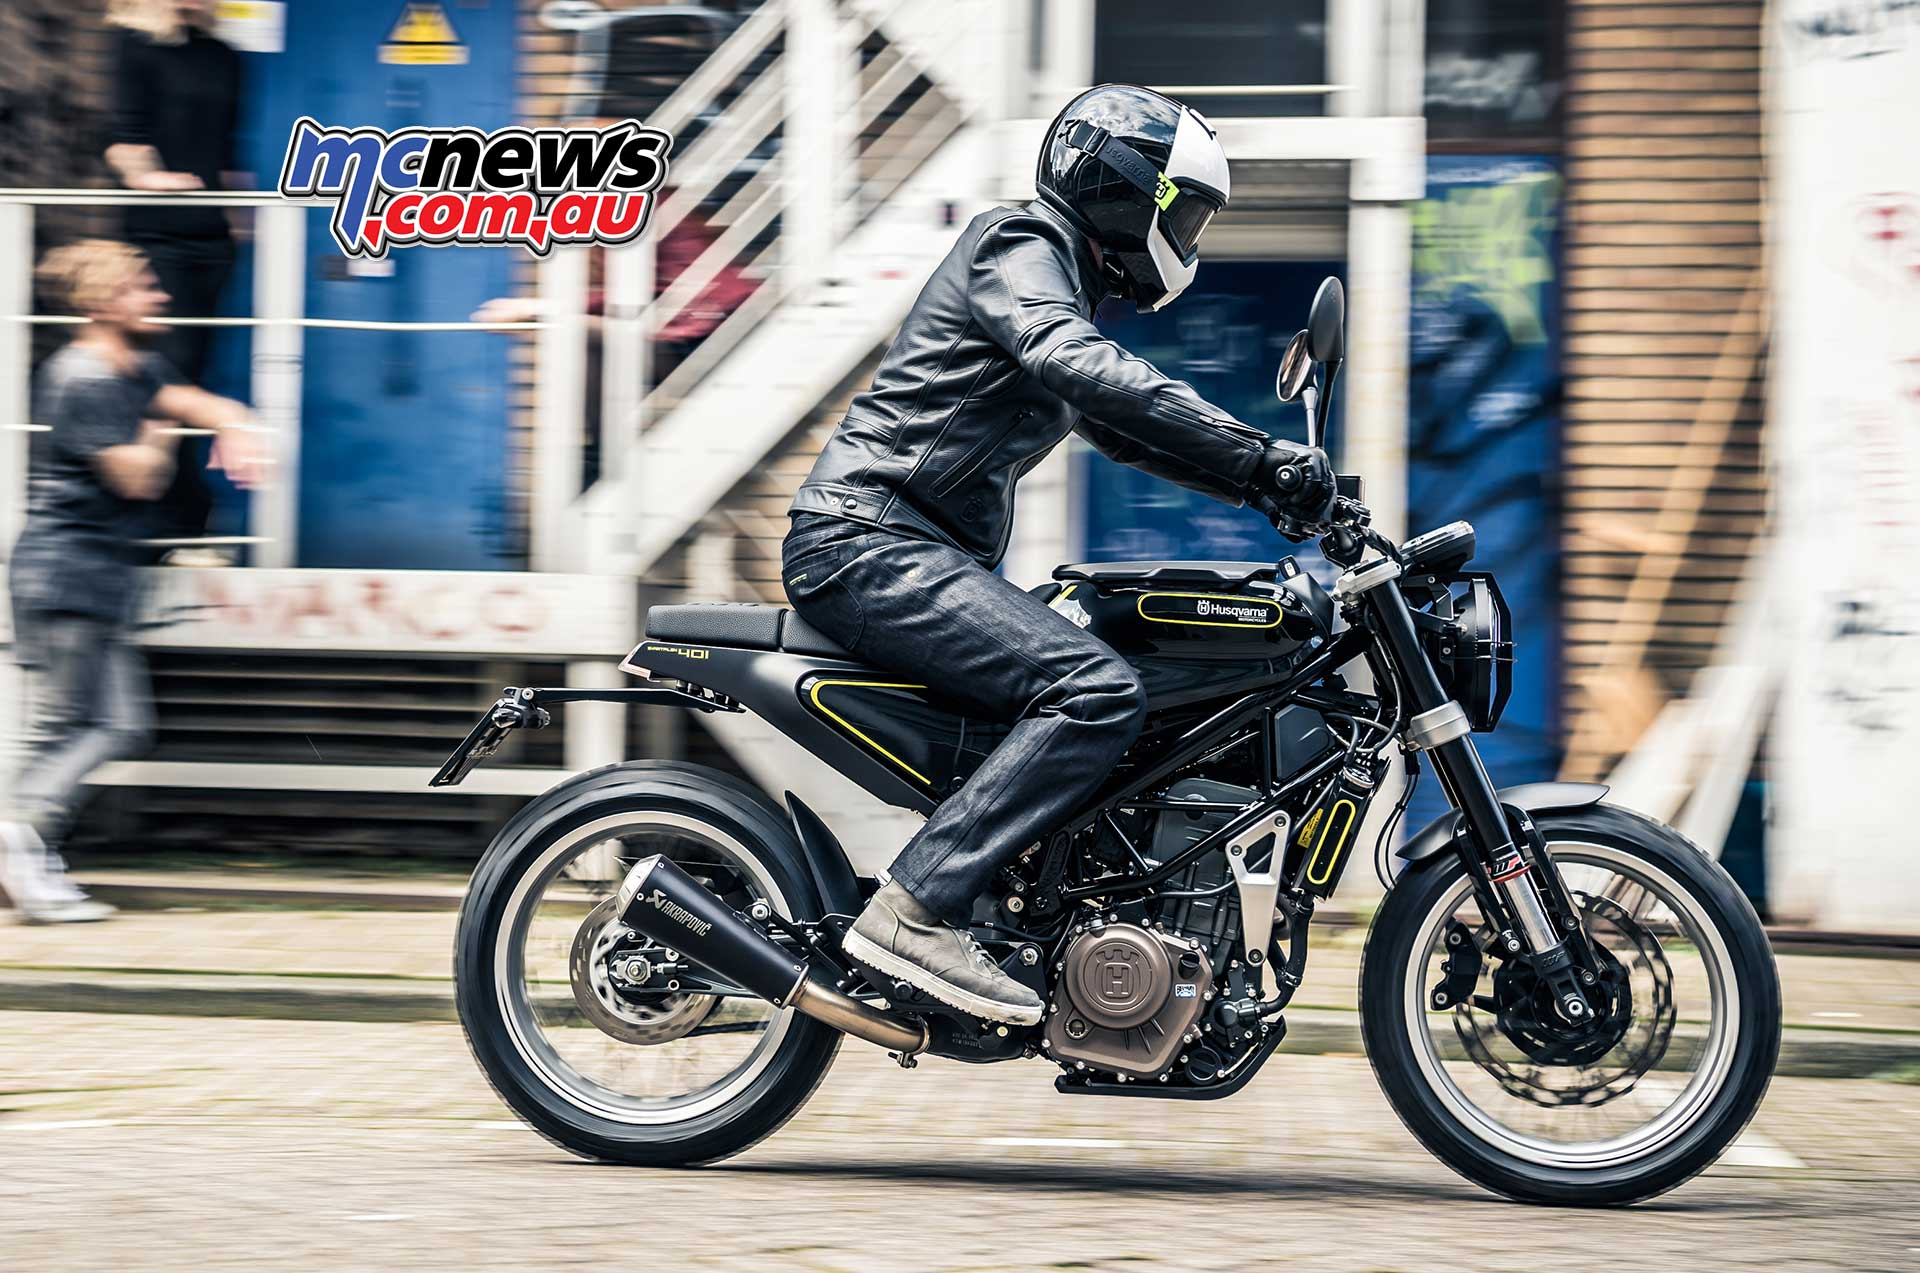 Husqvarna Svartpilen 401 To Arrive Late March Mcnews Com Au